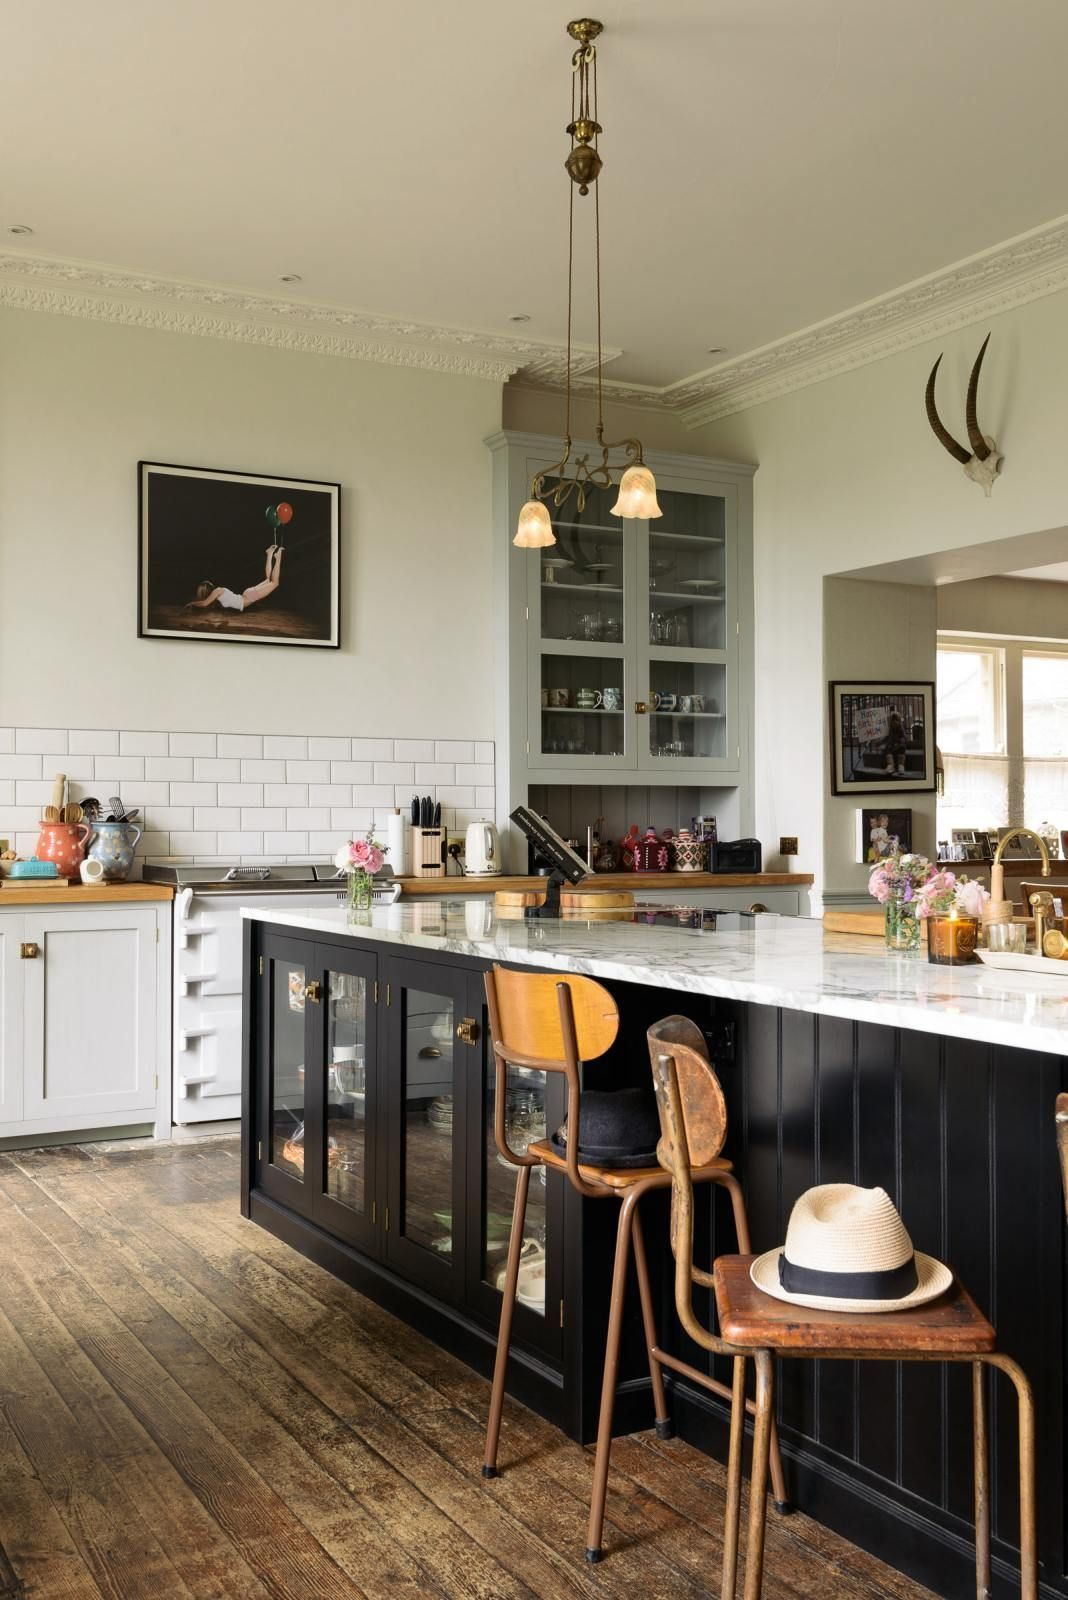 The Frome Kitchen Devol Kitchens Healdsburg Homestead Kitchen Devol Frome Healdsburg Homestead Kitchen Kitche In 2020 Devol Kitchens Kitchen Trends Kitchen Design